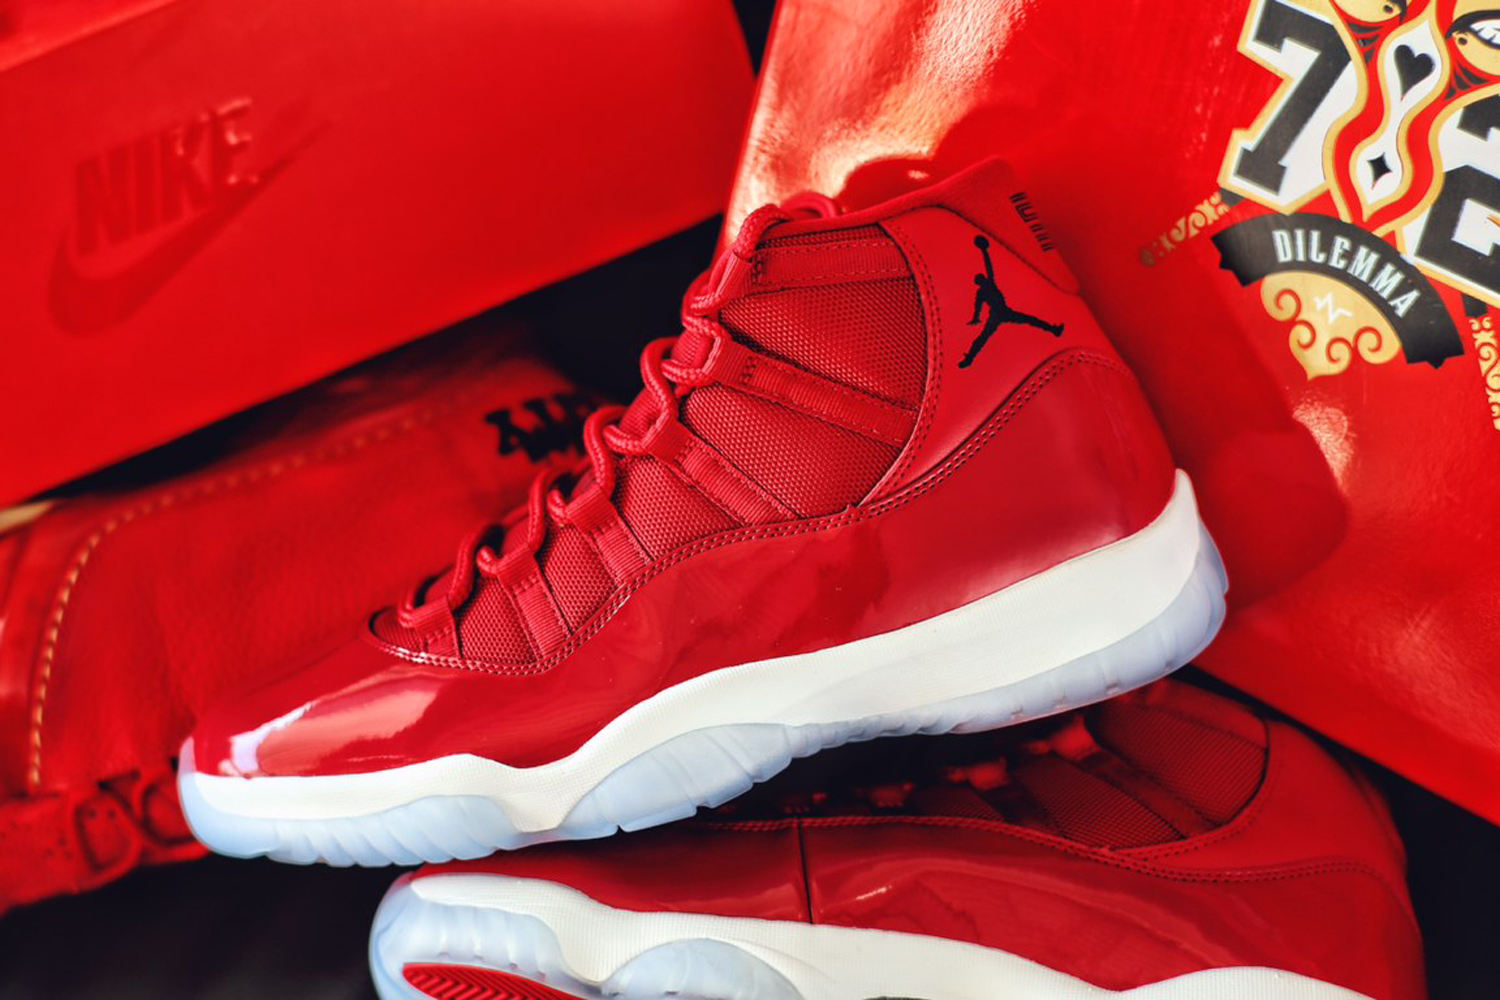 b2388dbd45733 Up Close and Personal with the Air Jordan 11 'Win Like '96 ...